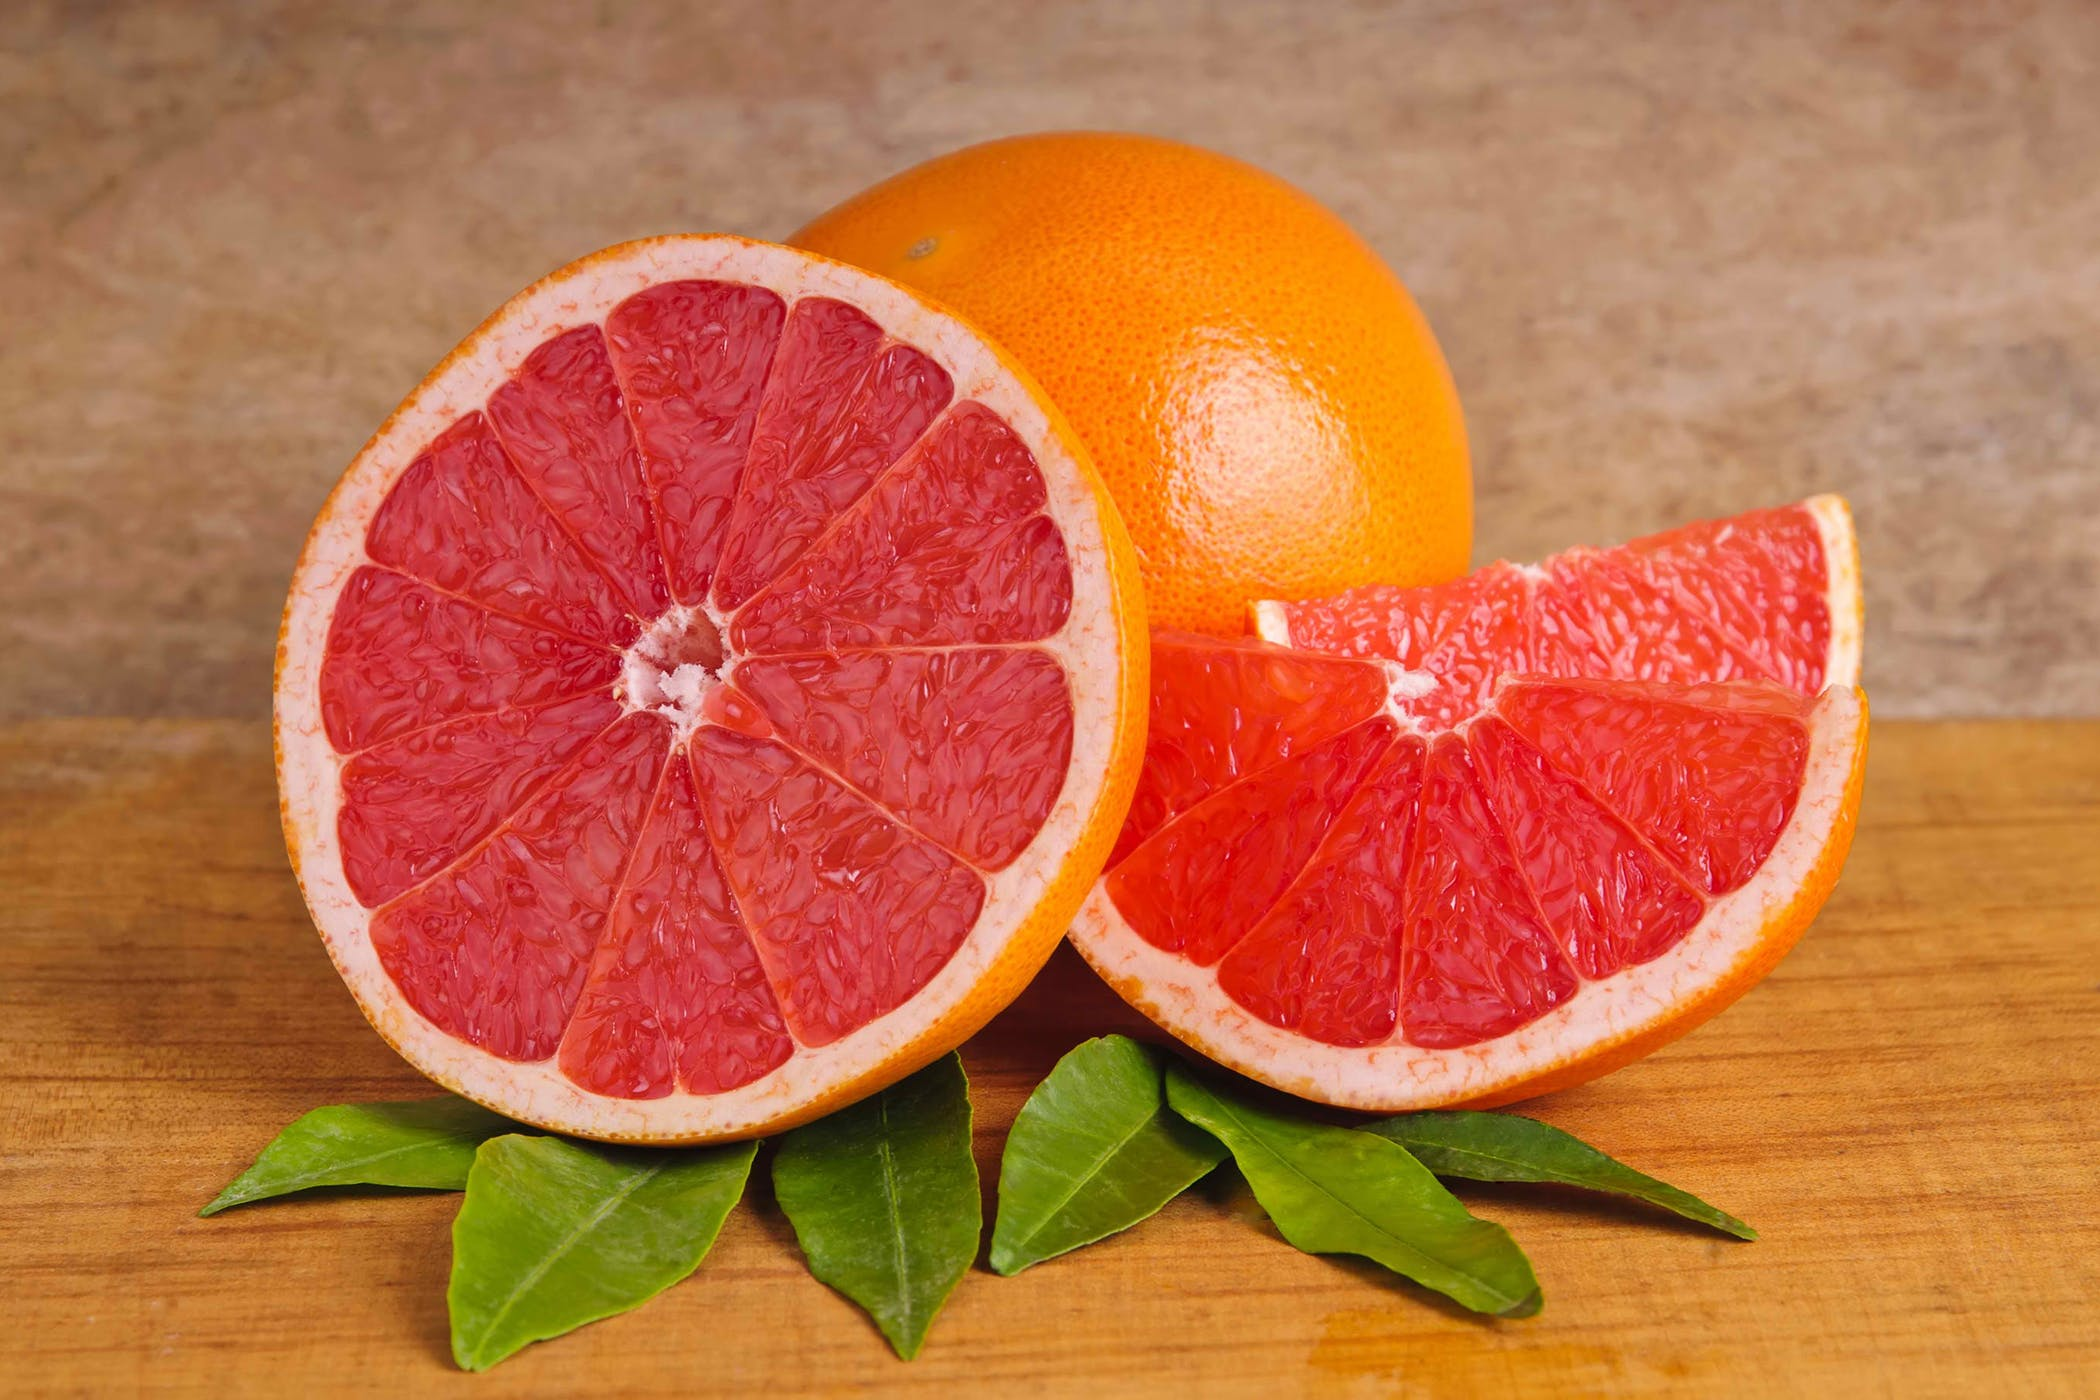 Grapefruit Poisoning in Cats - Symptoms, Causes, Diagnosis